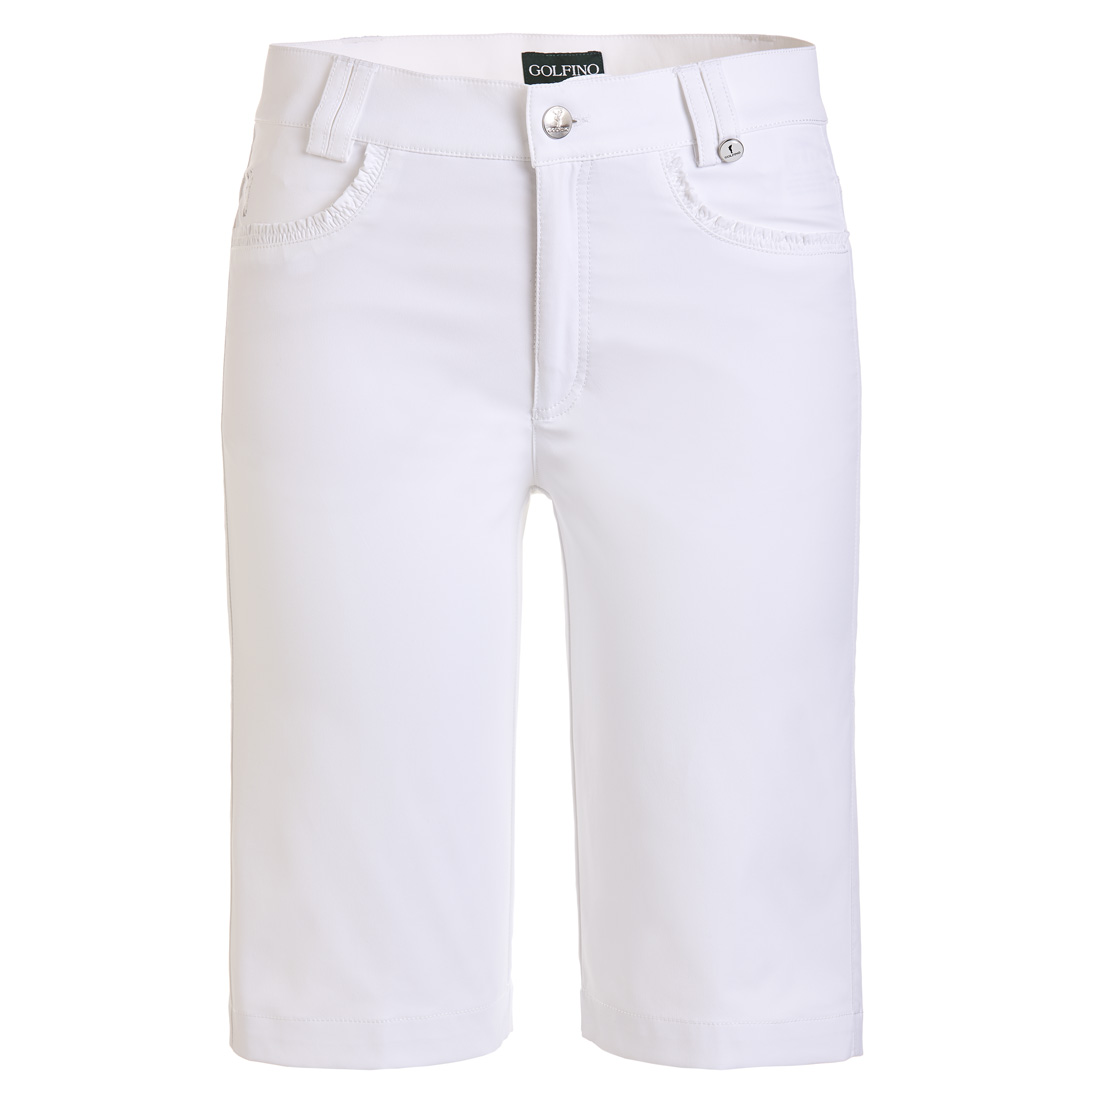 Damen Golfbermuda Sun Protection Techno Stretch Slim Fit